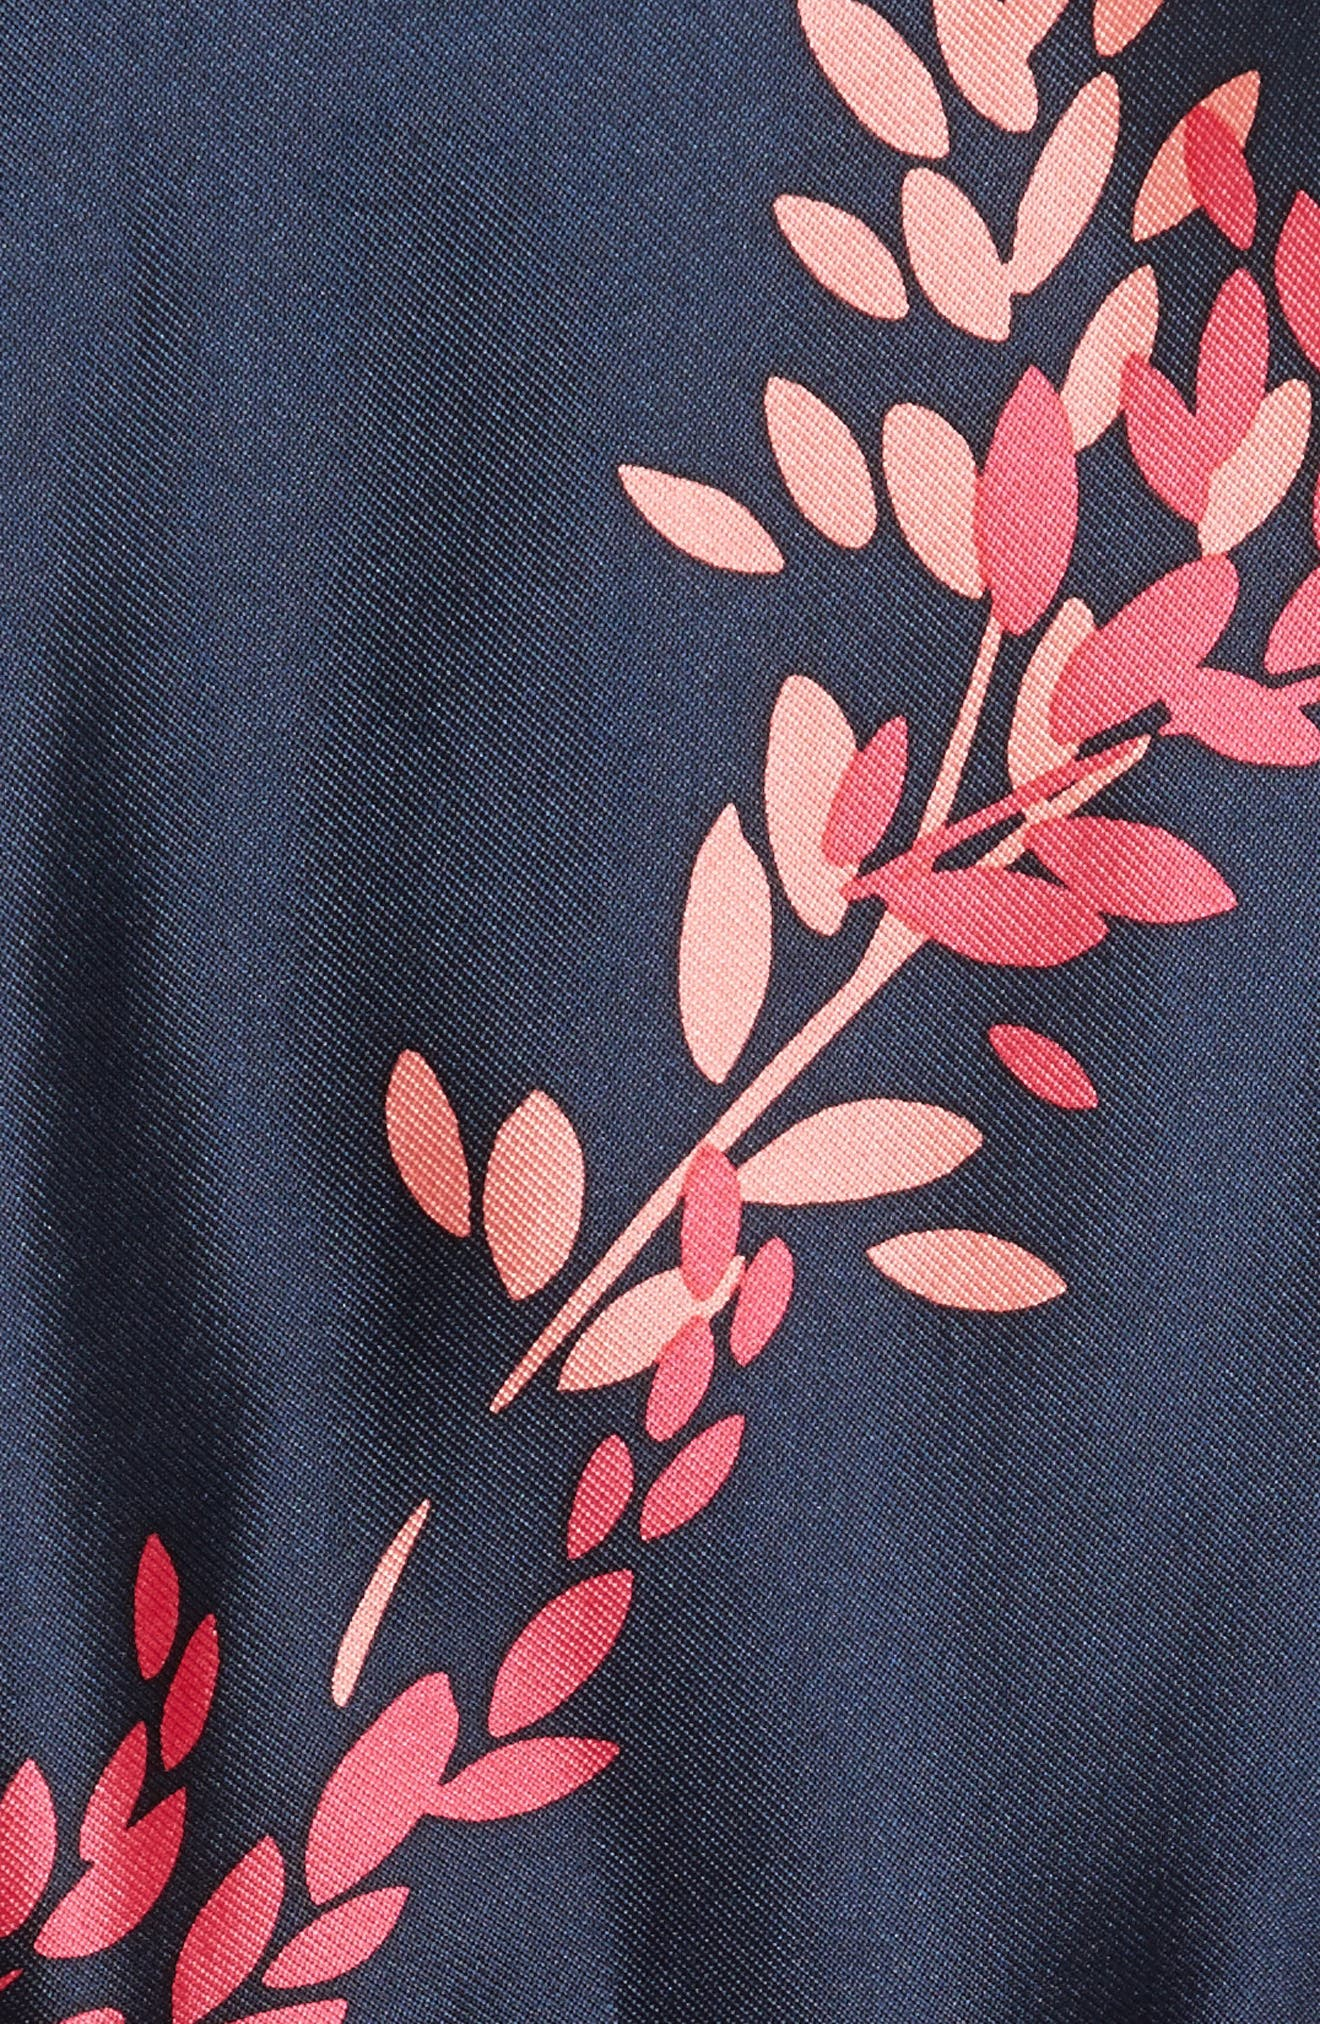 Alternate Image 5  - Oscar de la Renta Leaf Print Silk & Cotton Dress